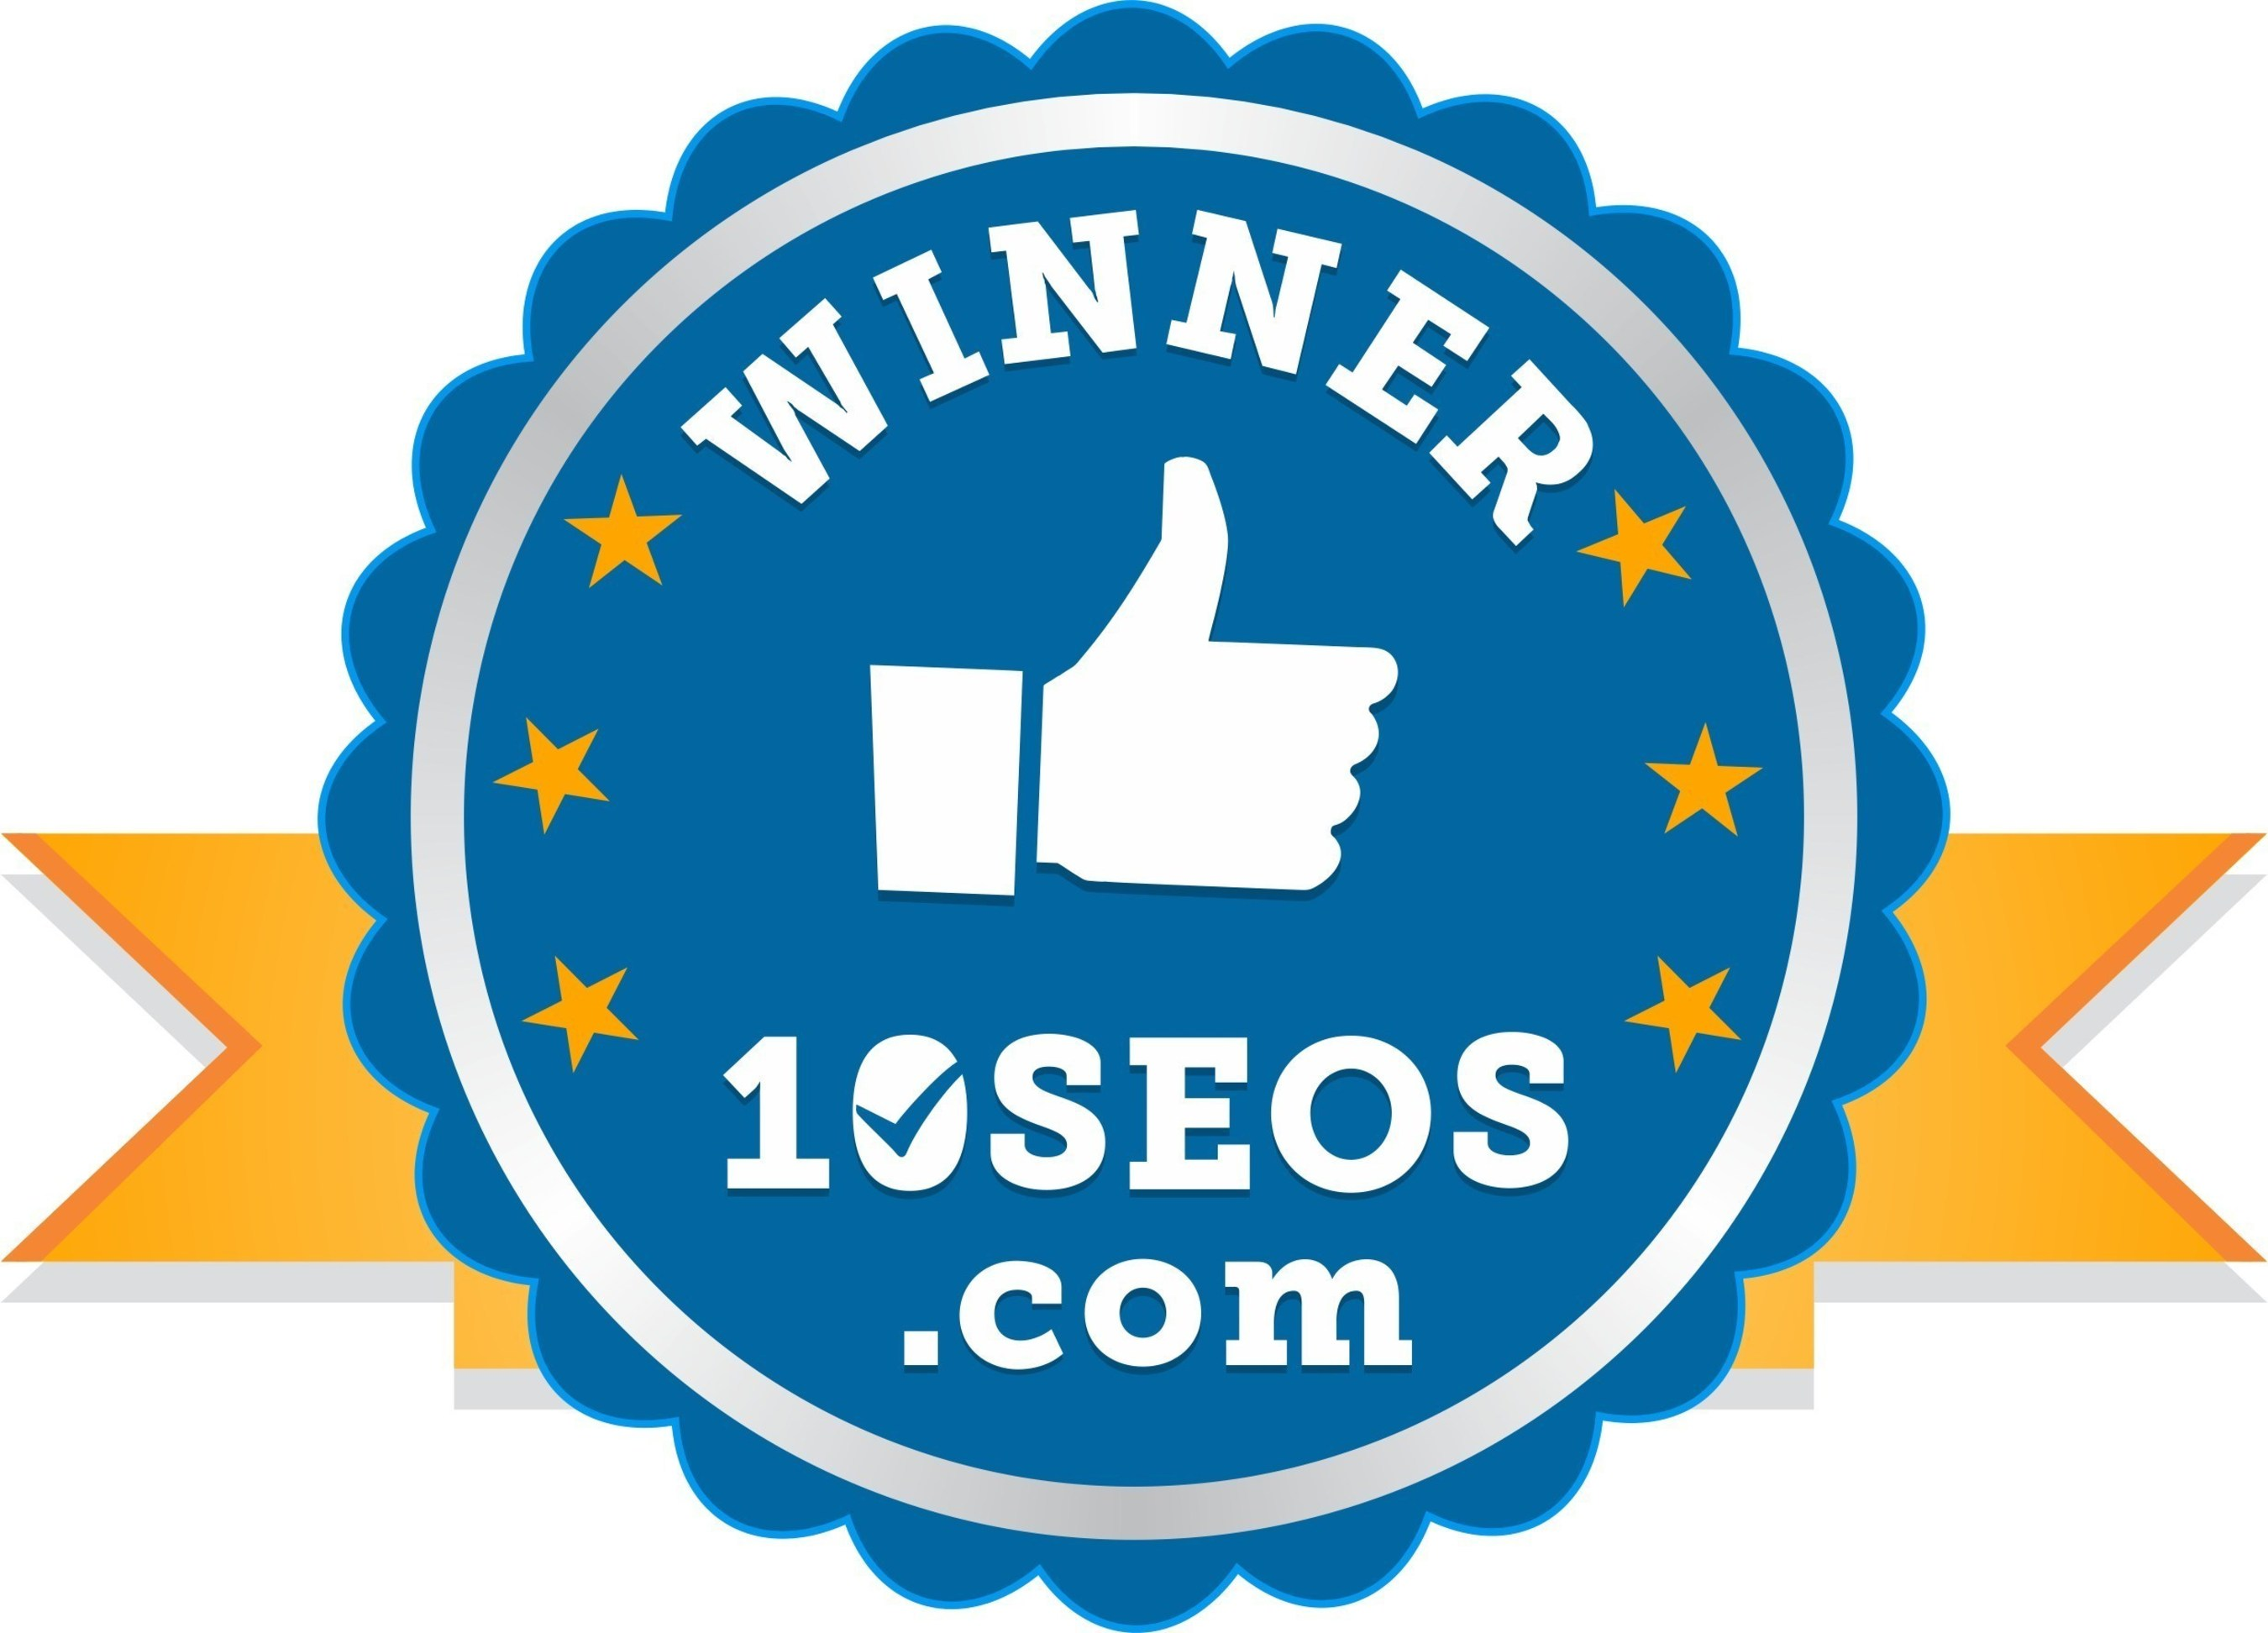 10seos.com Provides 3rd Rank to Hudson Integrated in the List of Best SEO Firms Operating in the USA